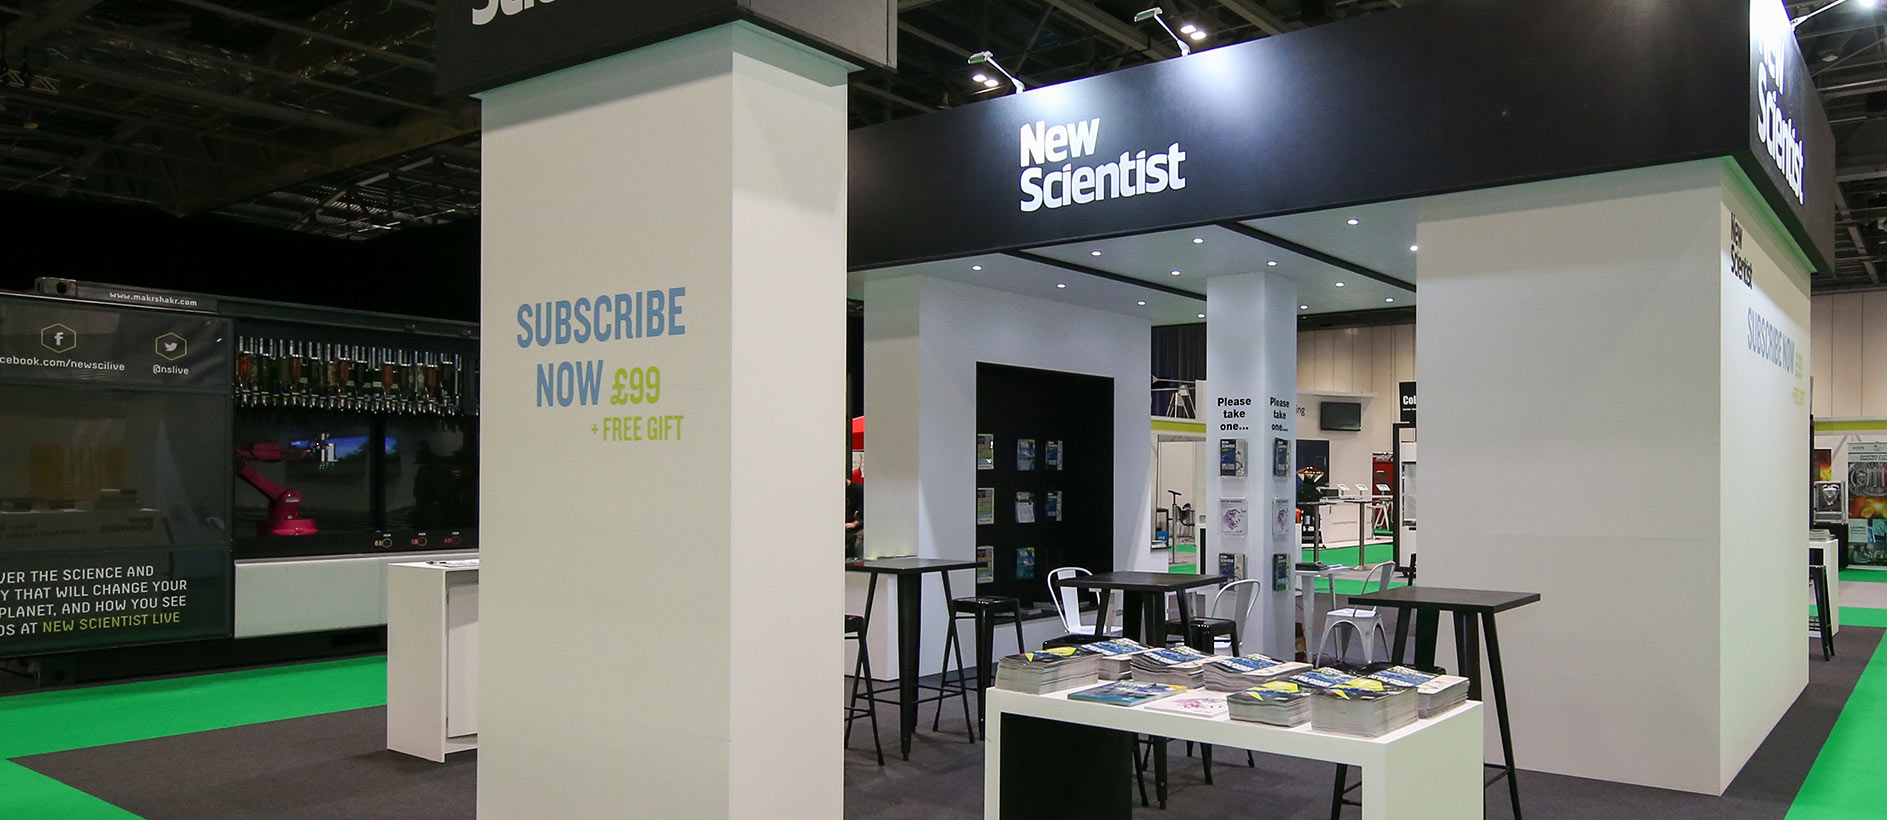 New Scientist trade show display by Exhibit 3Sixty